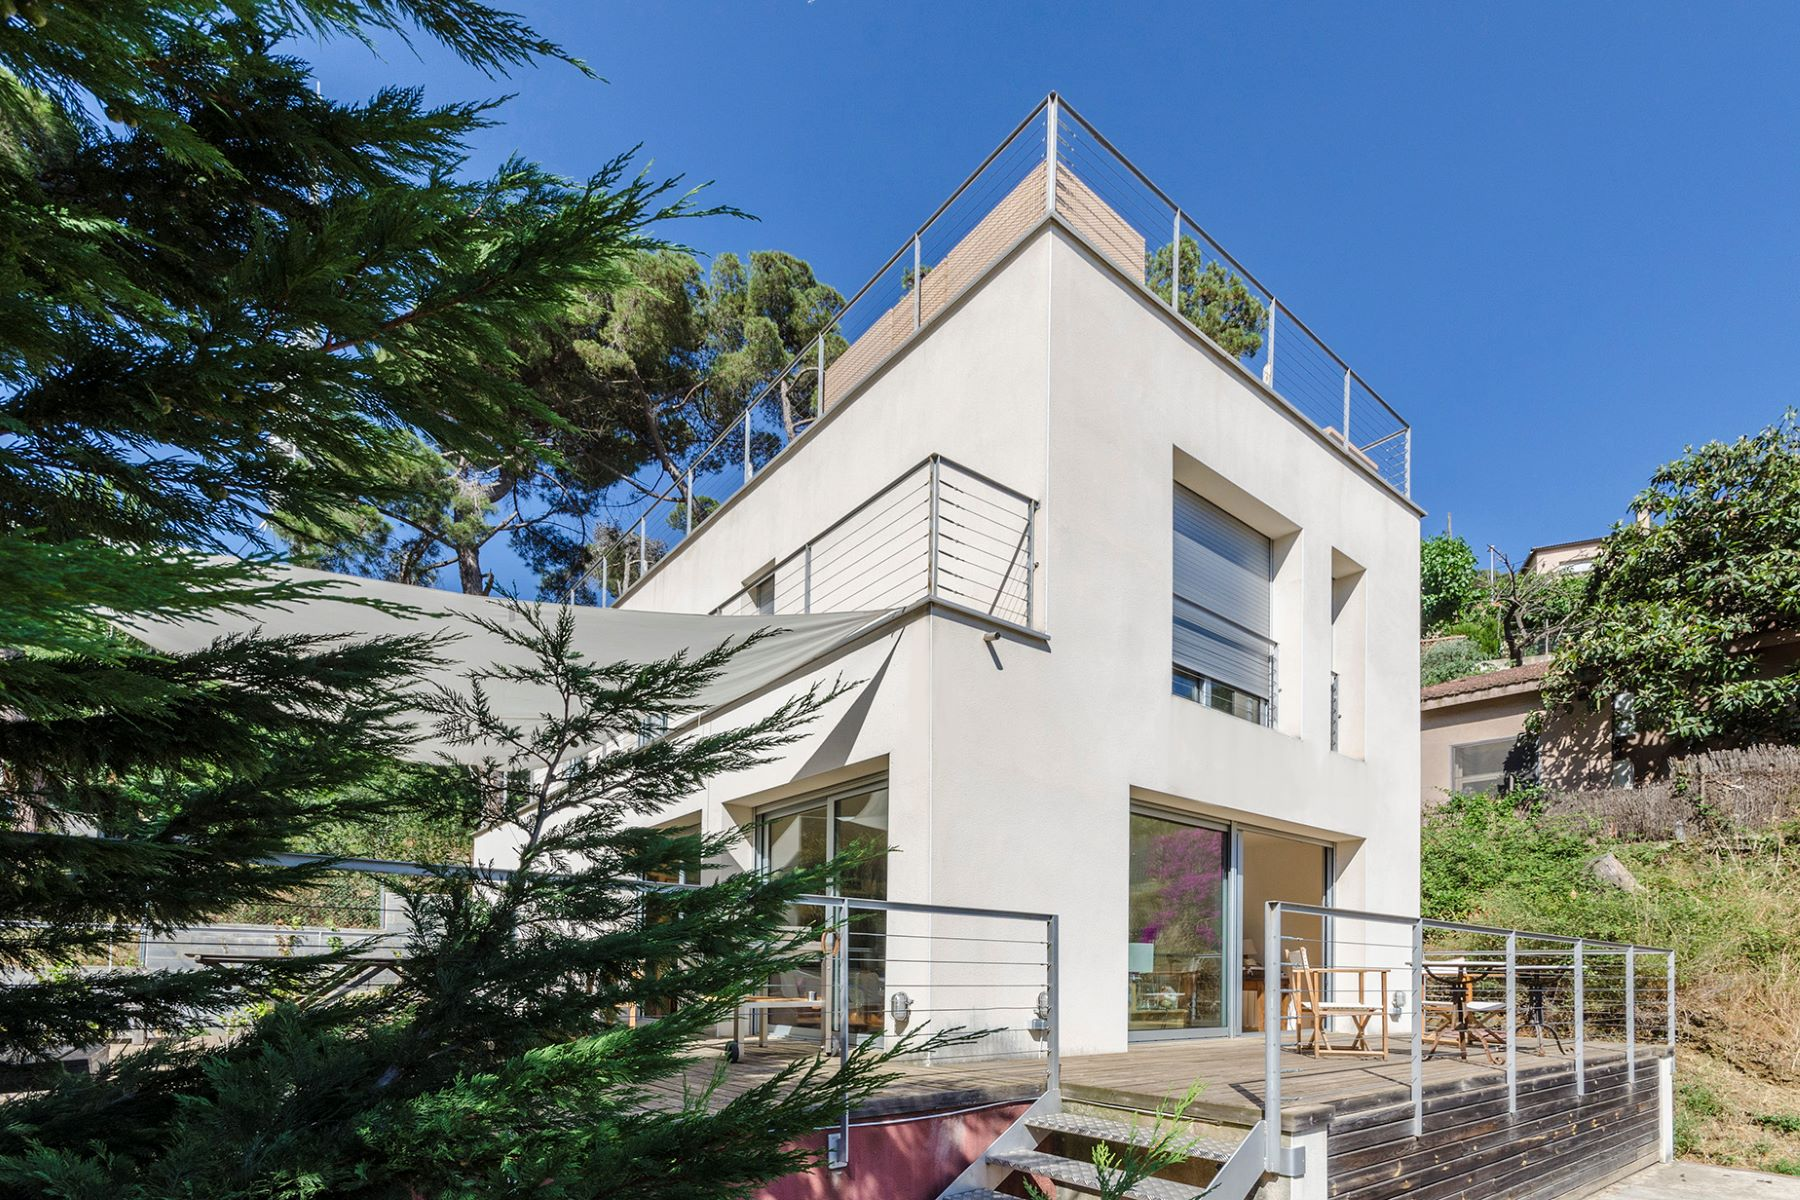 Single Family Home for Sale at Splendid modern house with spectacular views Barcelona City, Barcelona, 08034 Spain